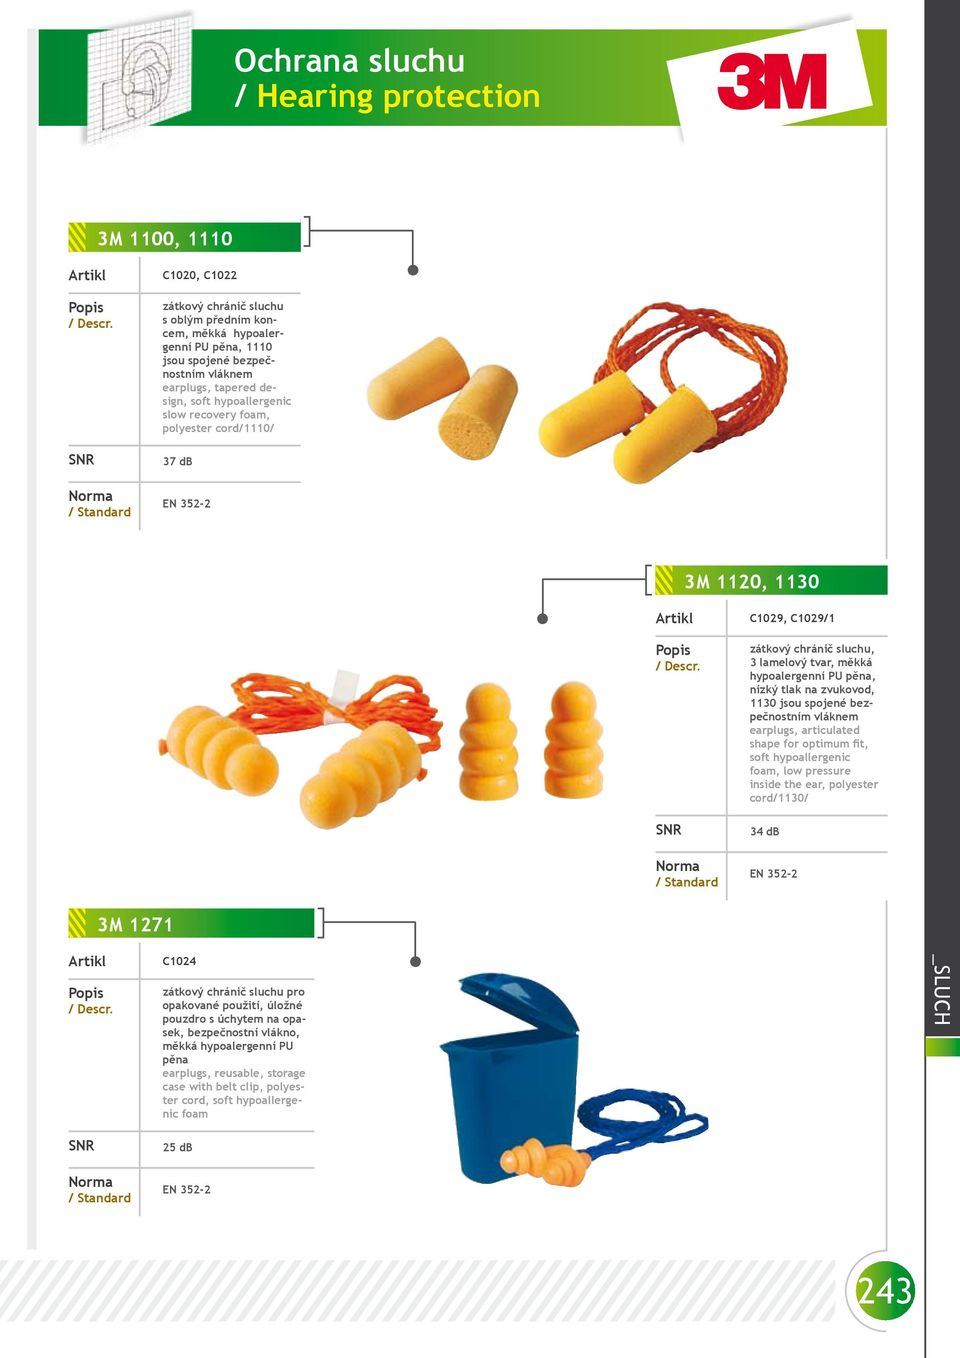 A Pdf Split Demo Purchase From To Remove The Watermark Hea Ring Reusable Earrplug W Pvc Cord 1271 Per Box Bezpenostnm Vlknem Earplugs Articulated Shape For Optimum Fit Soft Hypoallergenic Foam Low Pressure